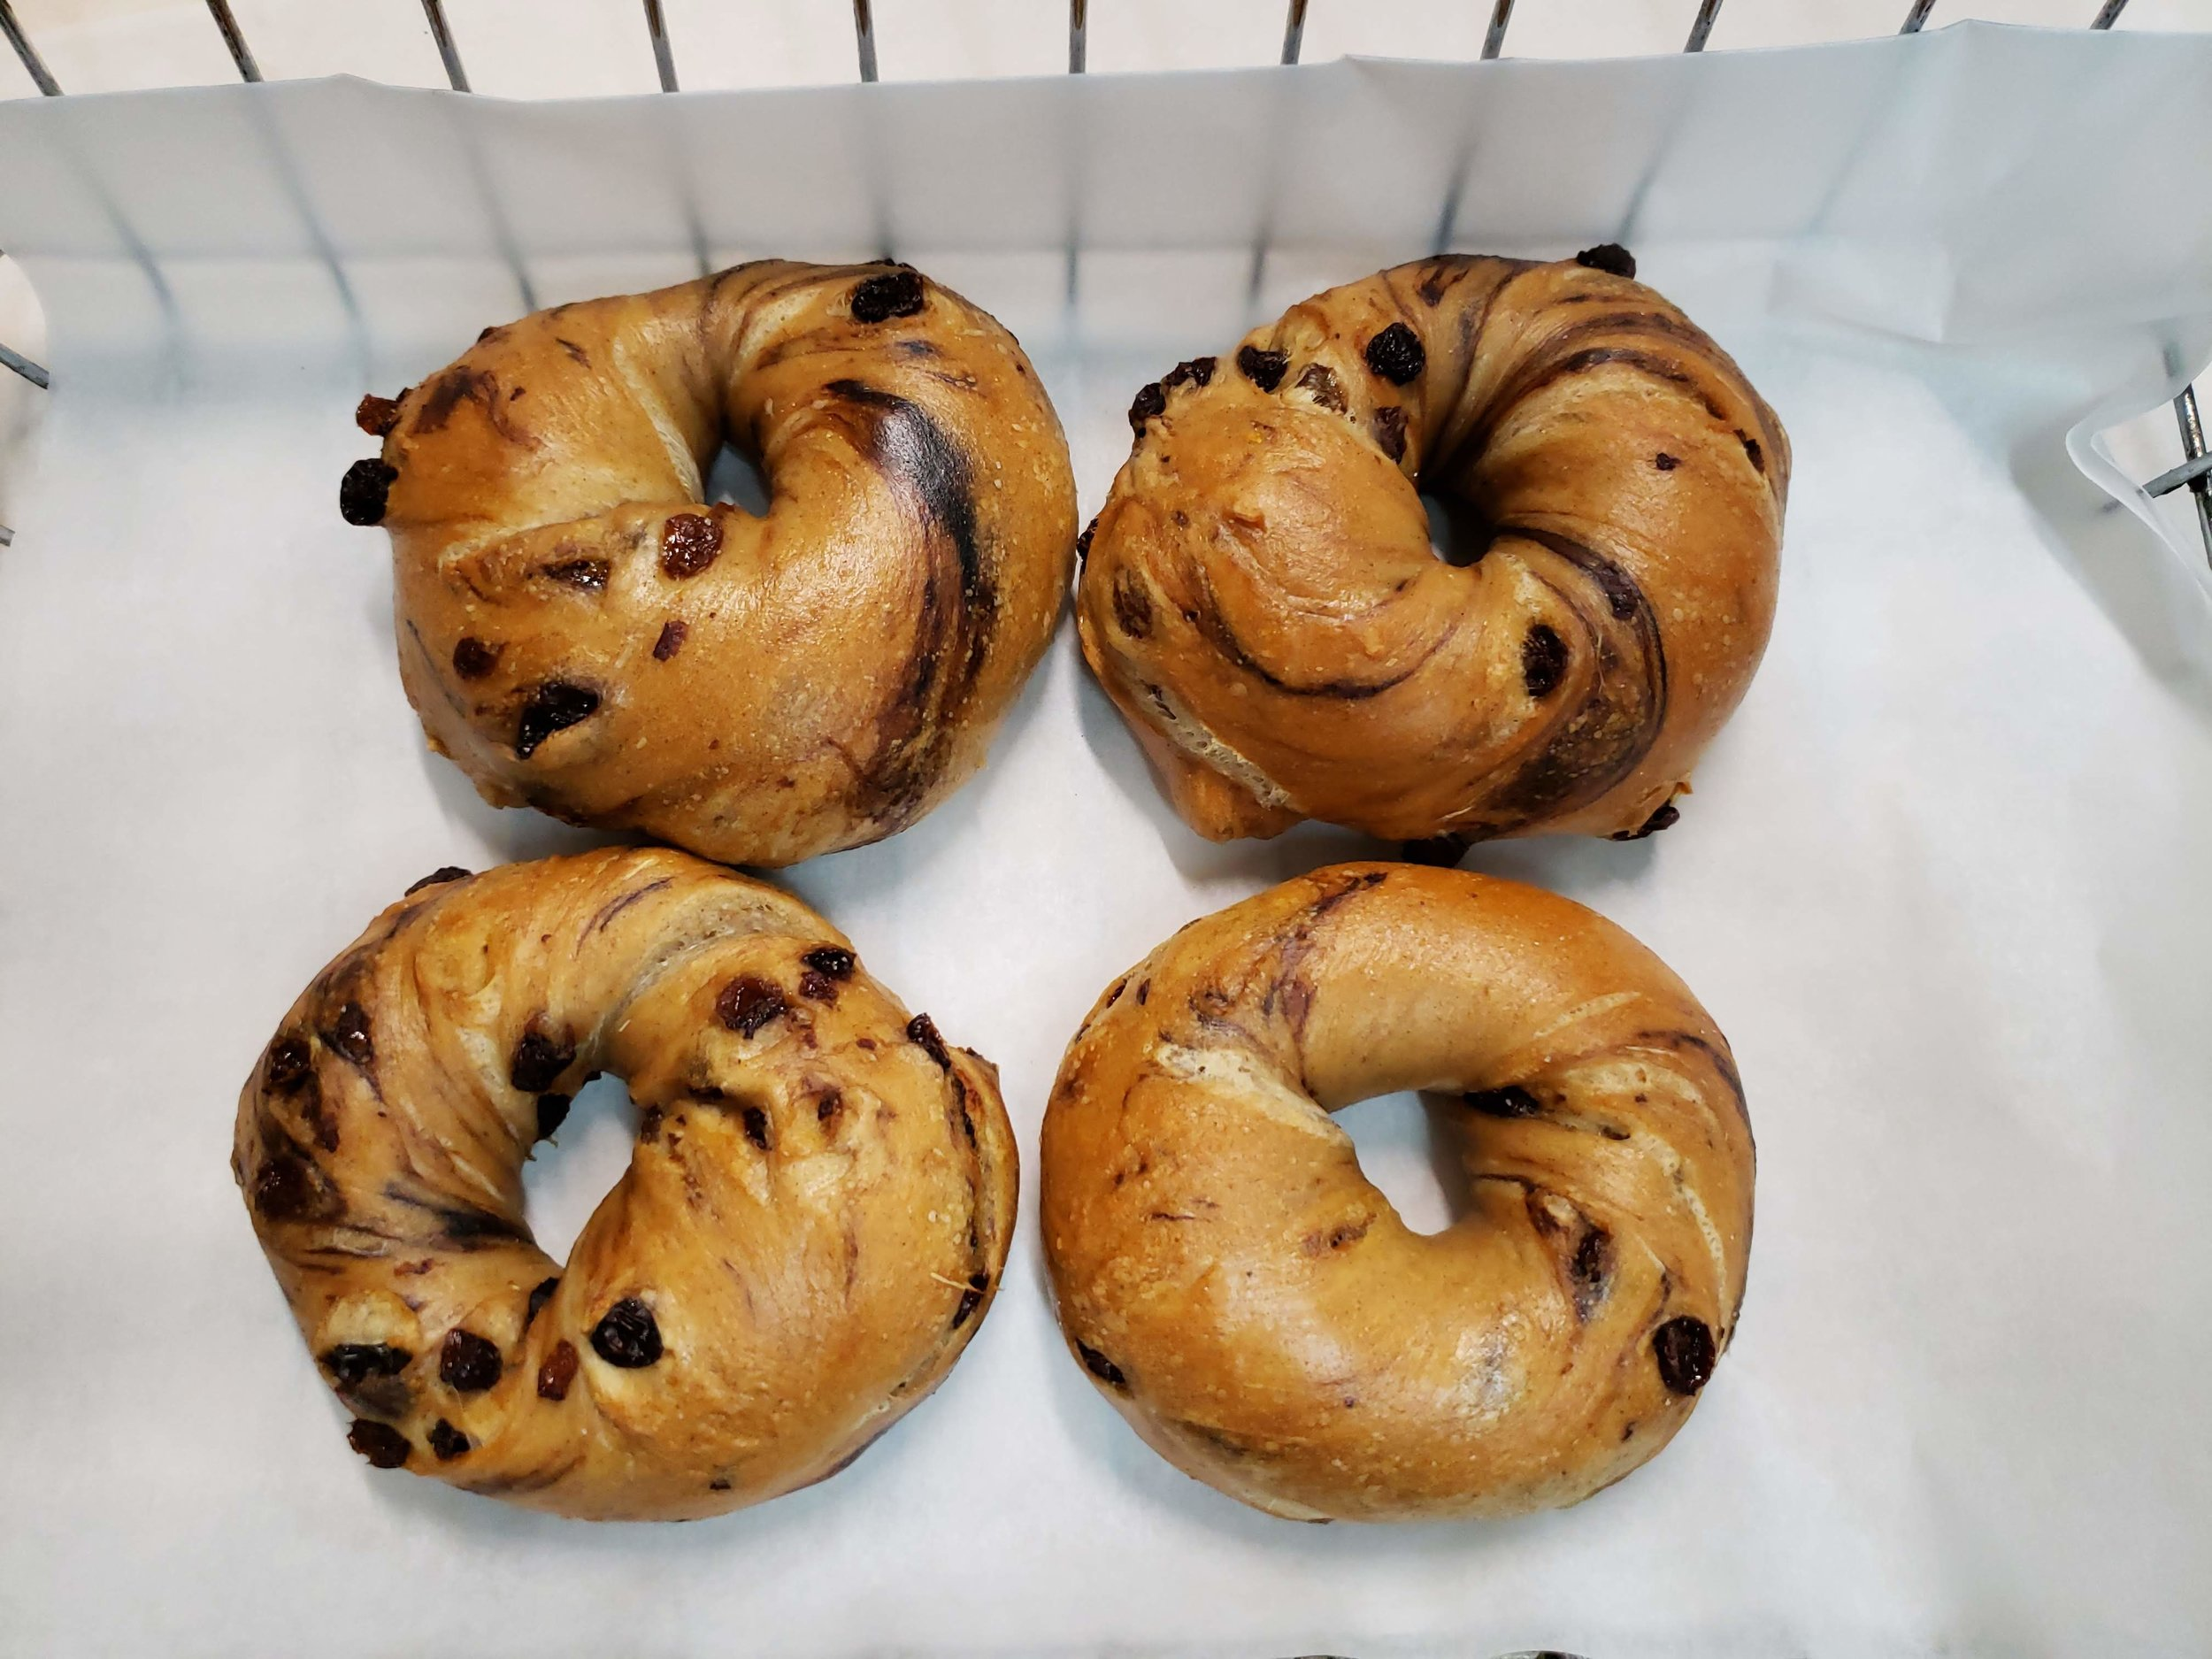 Cinnamon Raisin Bagel $2.40